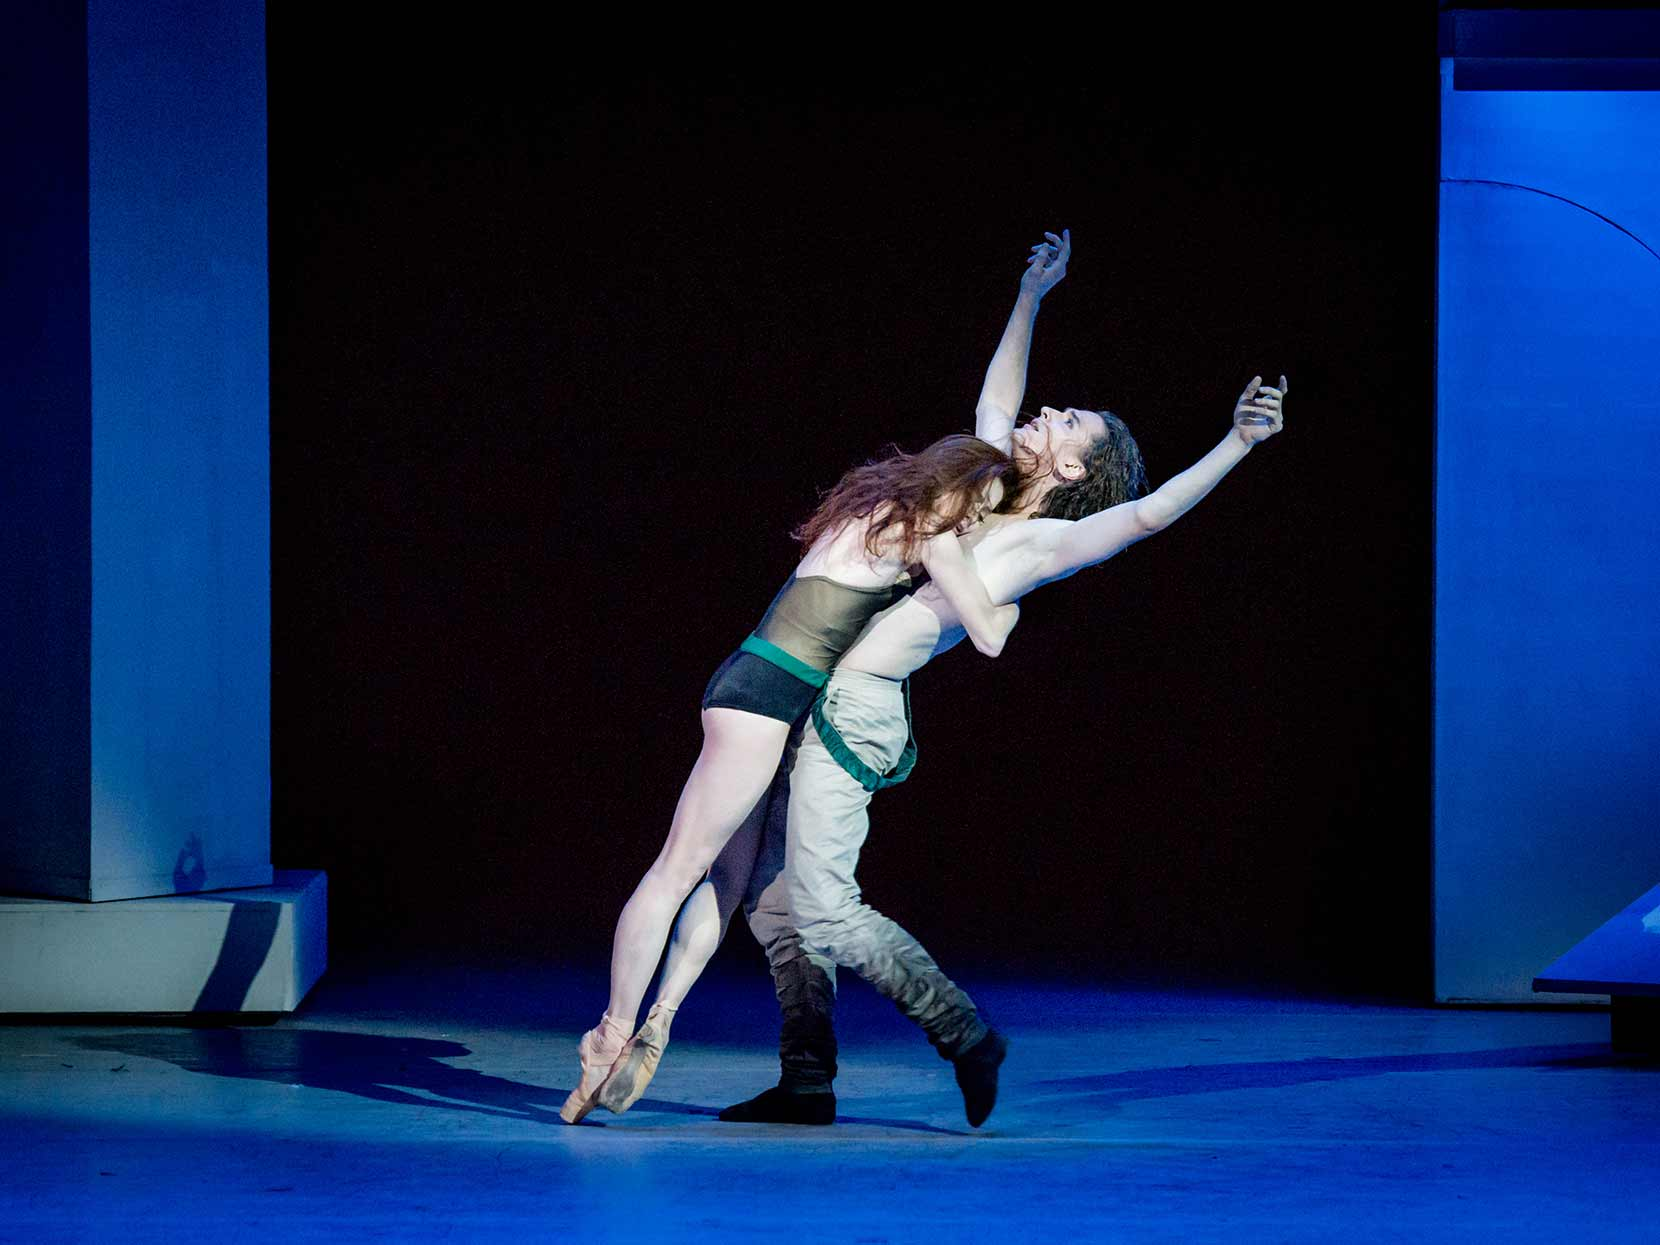 Ekaterina Krysanova and Vladislav Lantratovof the Bolshoi Ballet in The Taming of the Shrew